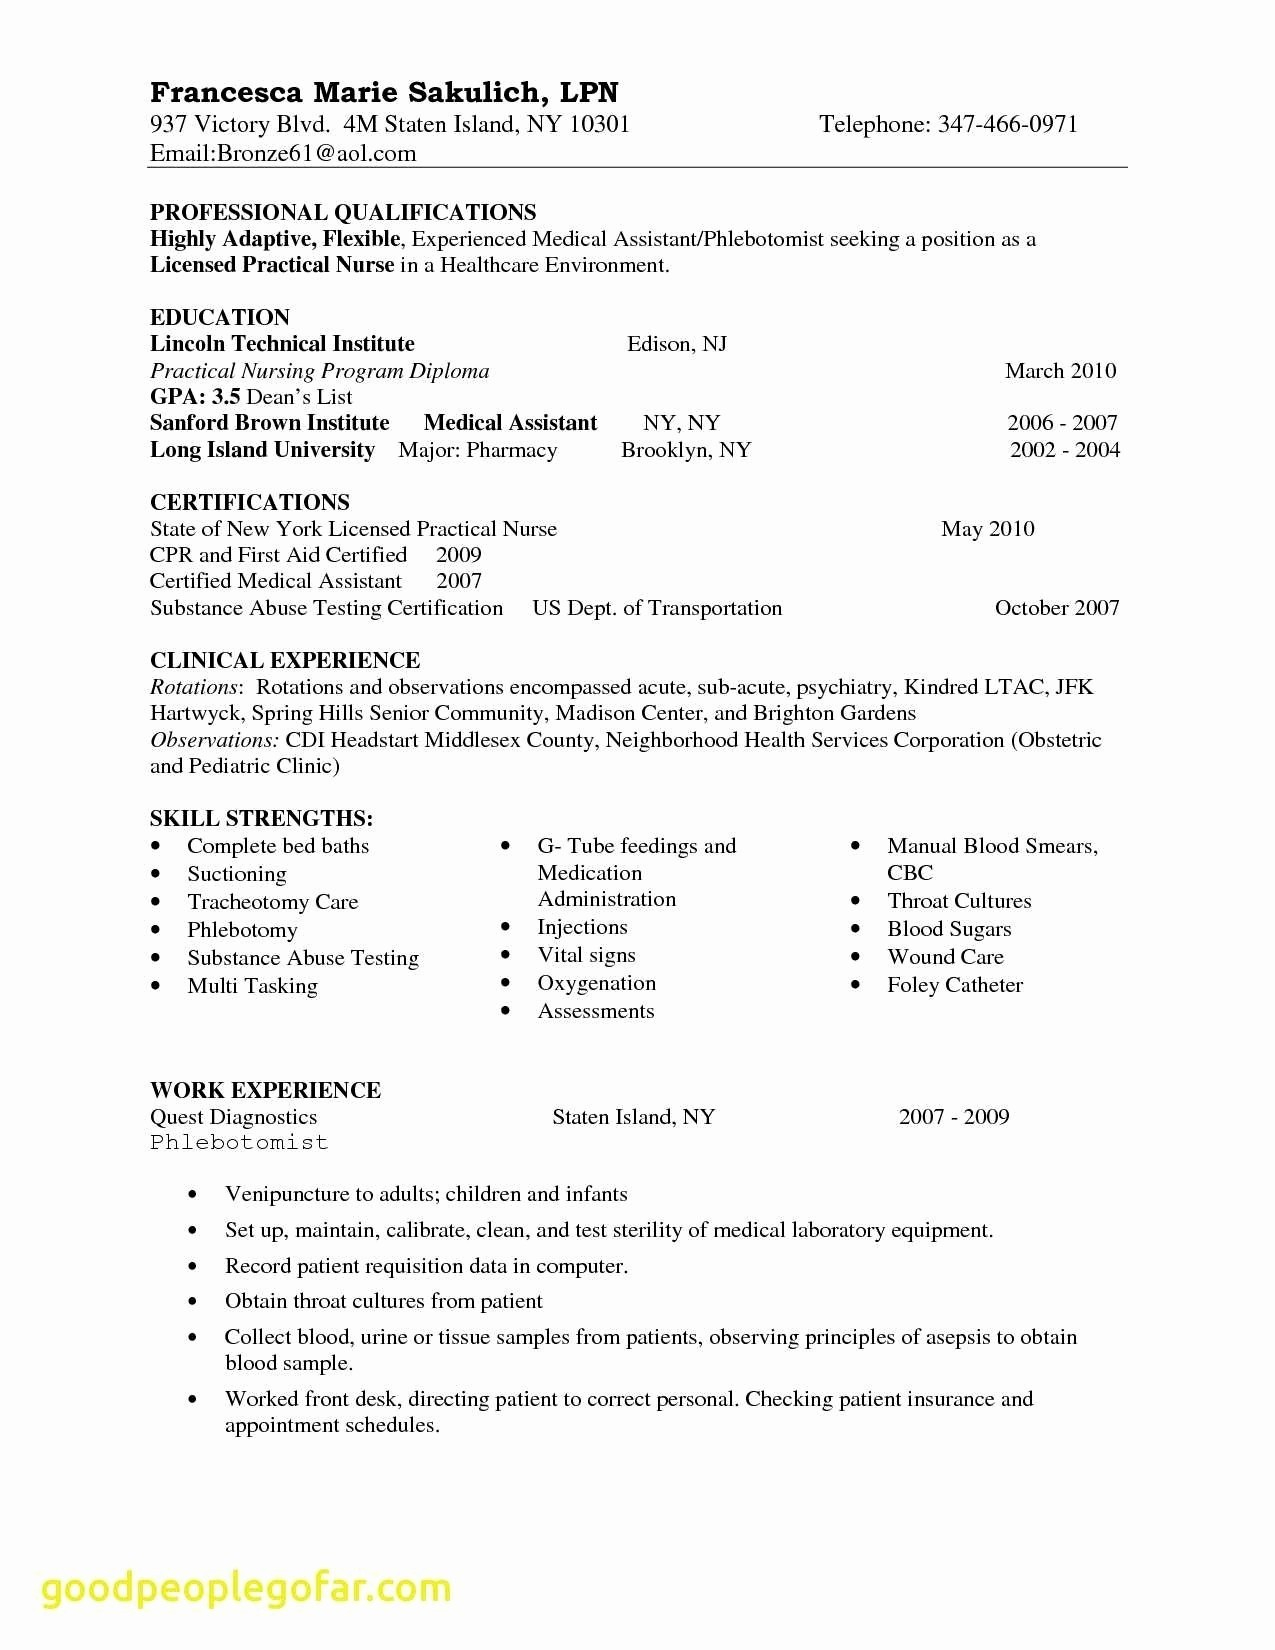 Find Resumes Online - Find Resumes Line Awesome Type Resume Line Fresh Entry Level